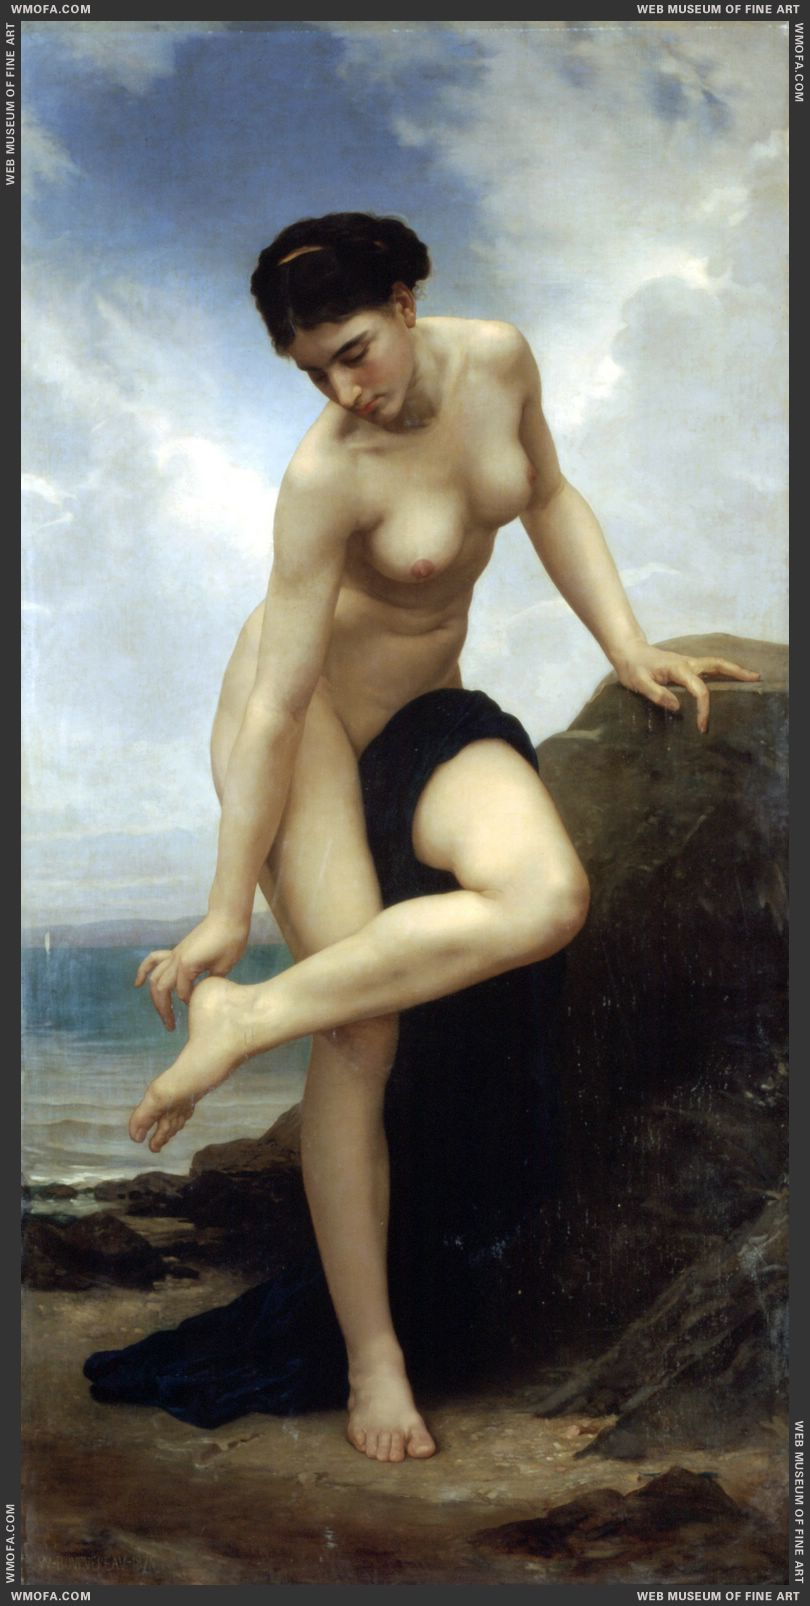 Apres le Bain - After the Bath 1875 by Bouguereau, William